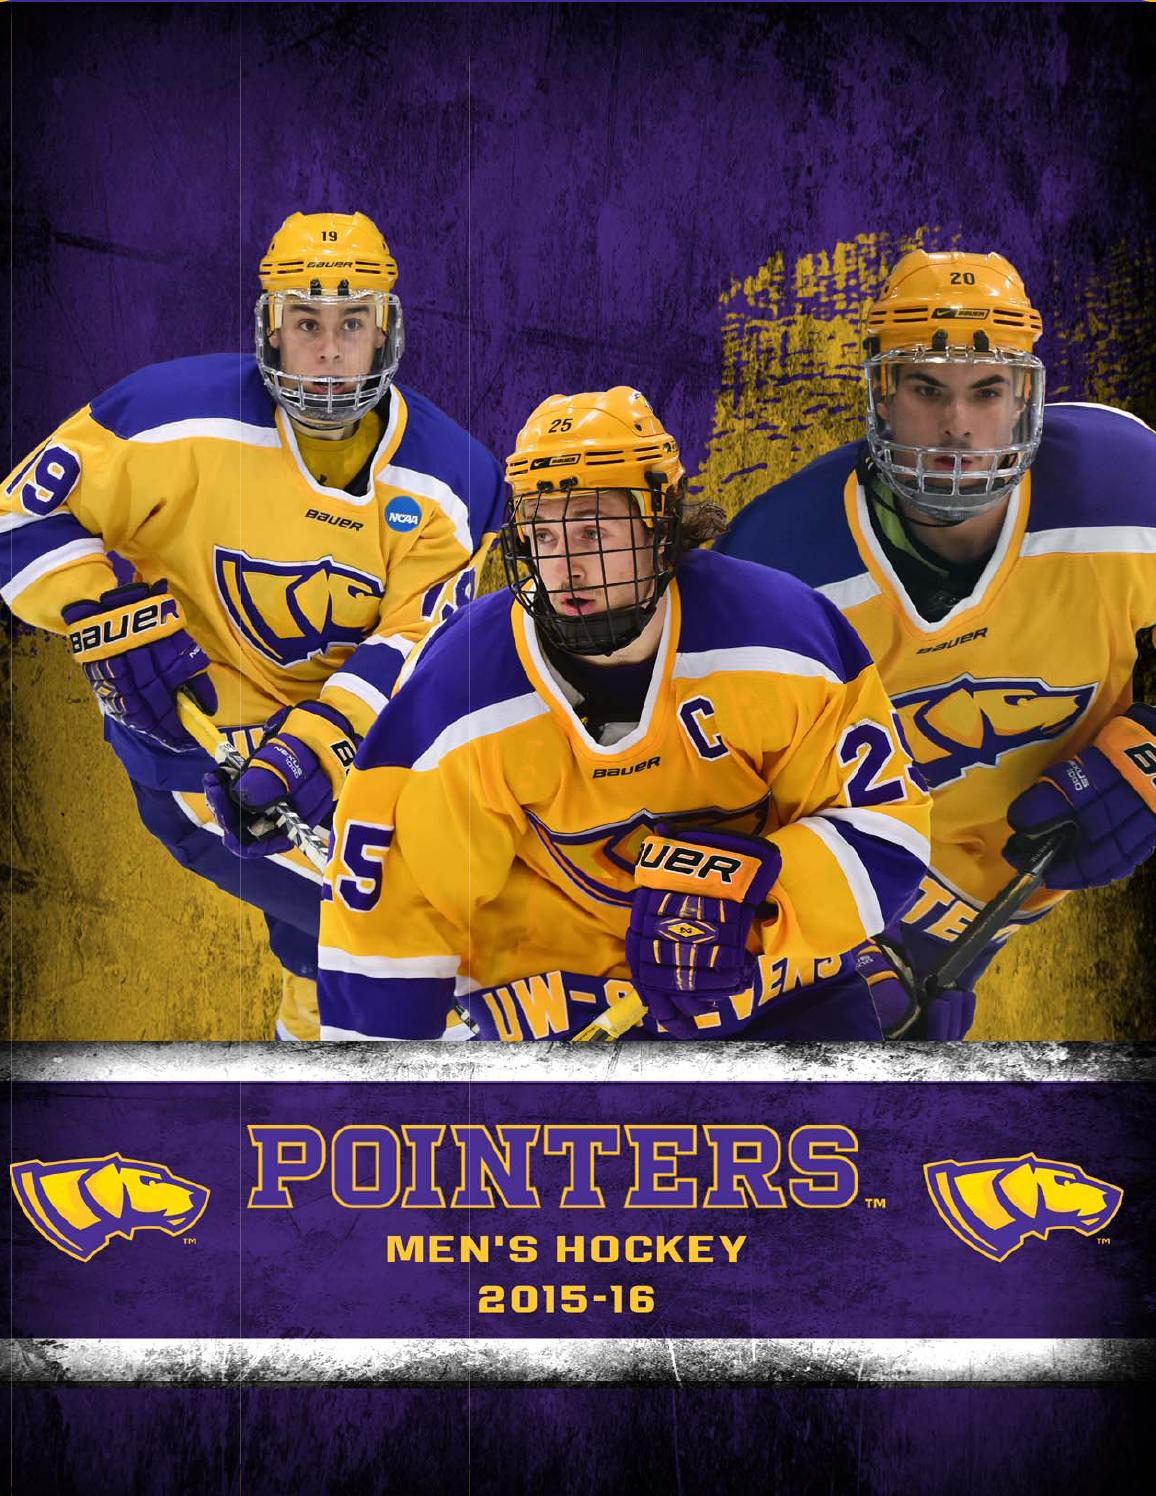 uw stevens point men s hockey media guide by uwsp 2014 15 uw stevens point men s hockey media guide by uwsp athletics issuu